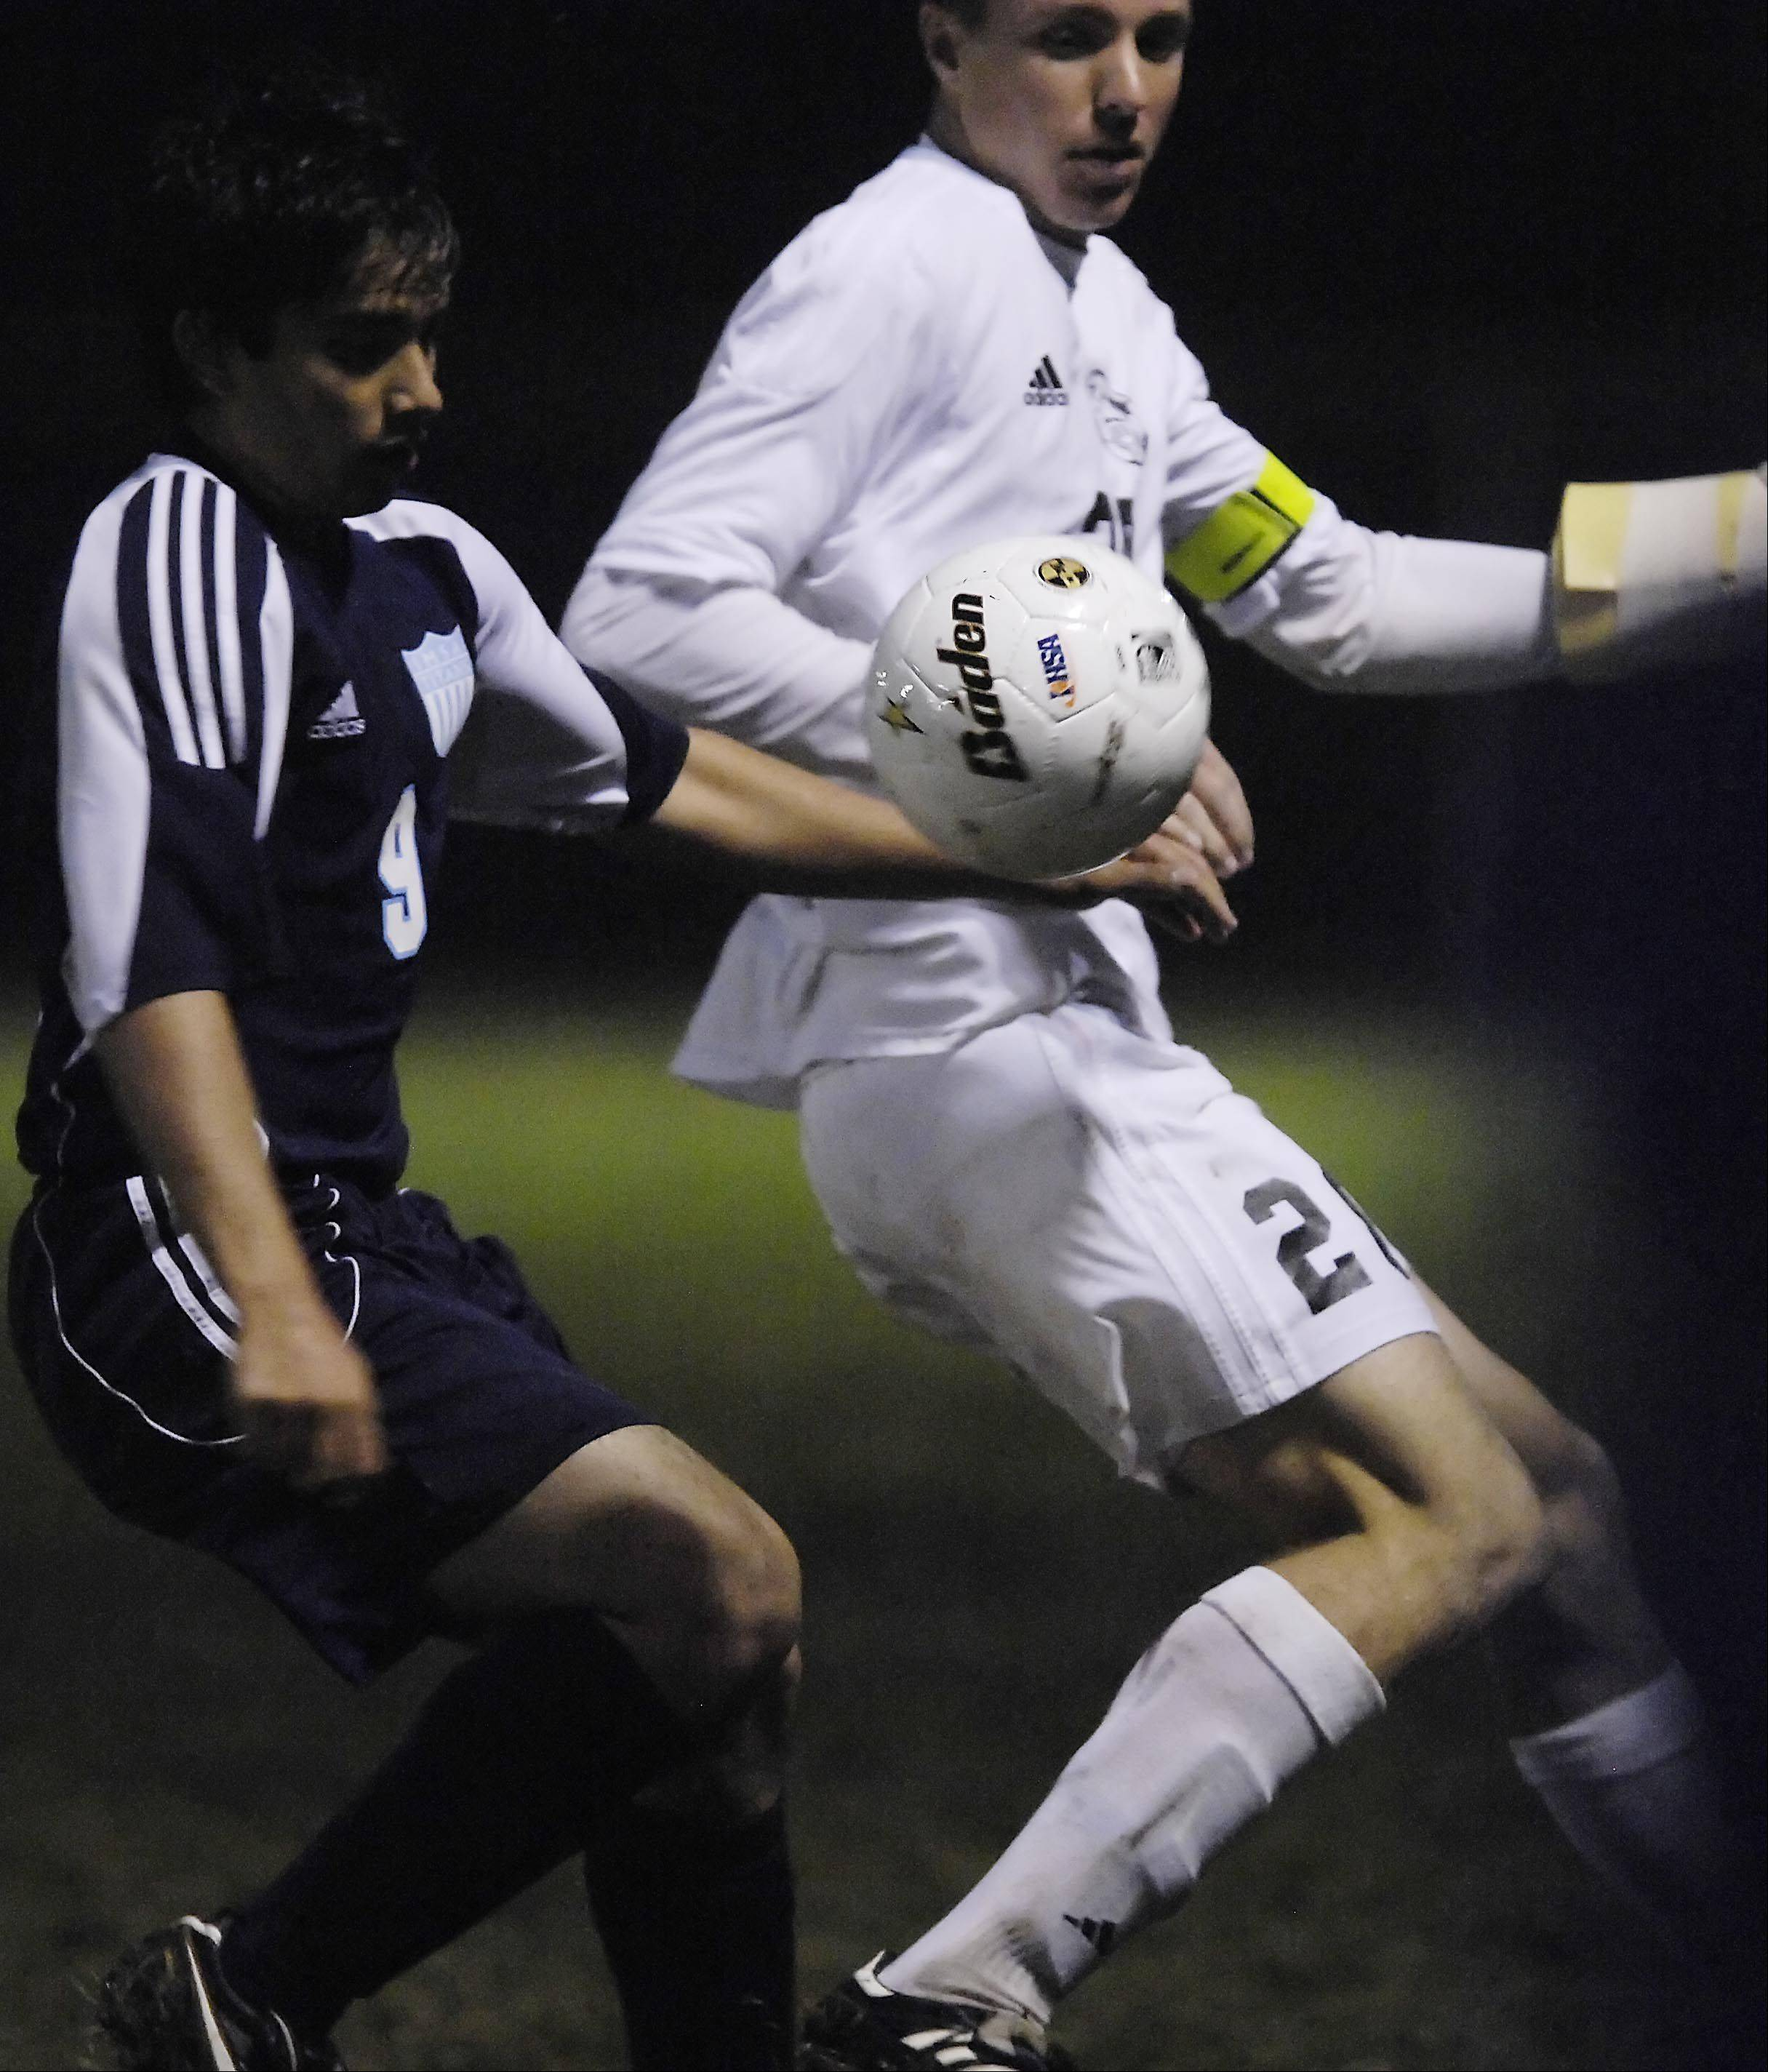 Kaneland's Alec Koczka, right, and IMSA's Ashwin Mitra battle Wednesday in the Burlington regional playoff game.